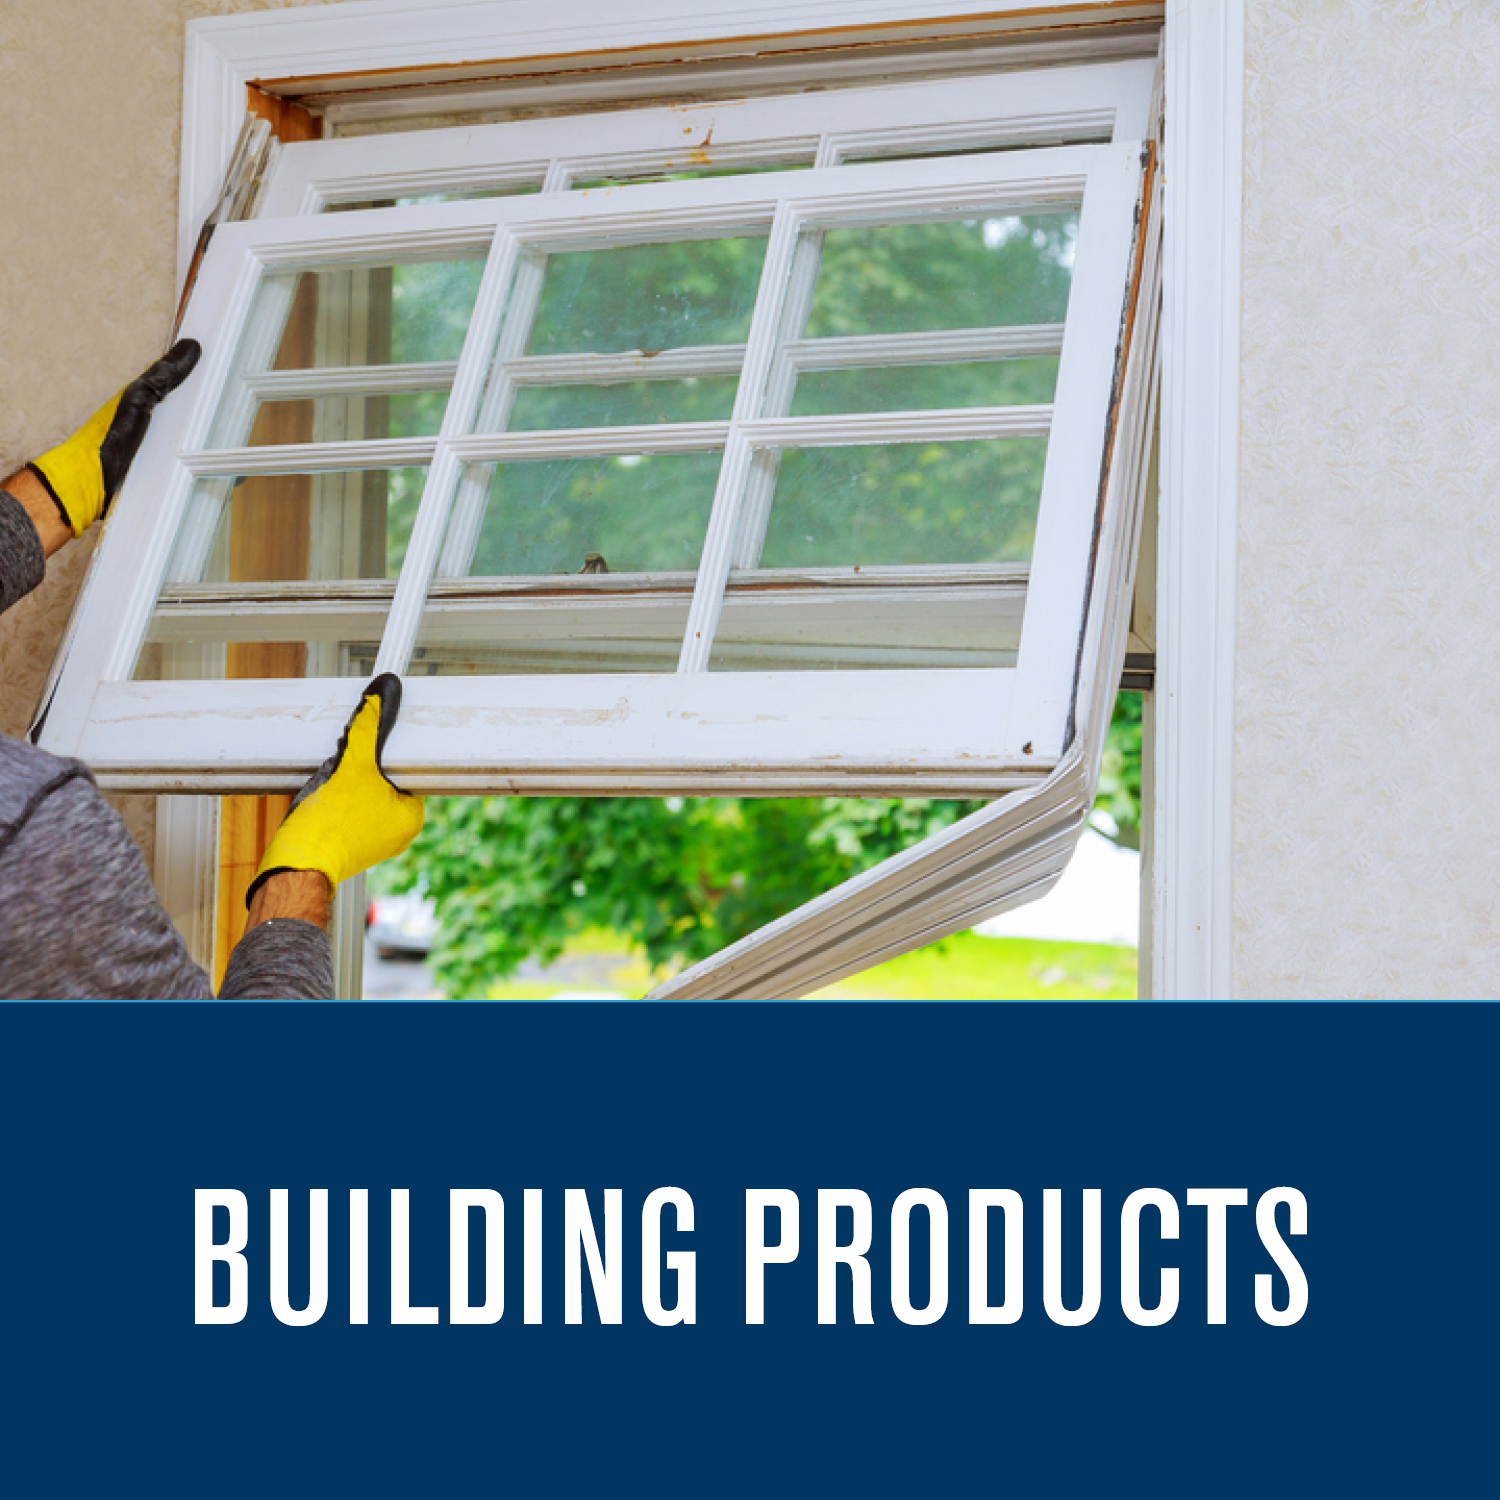 Building Products